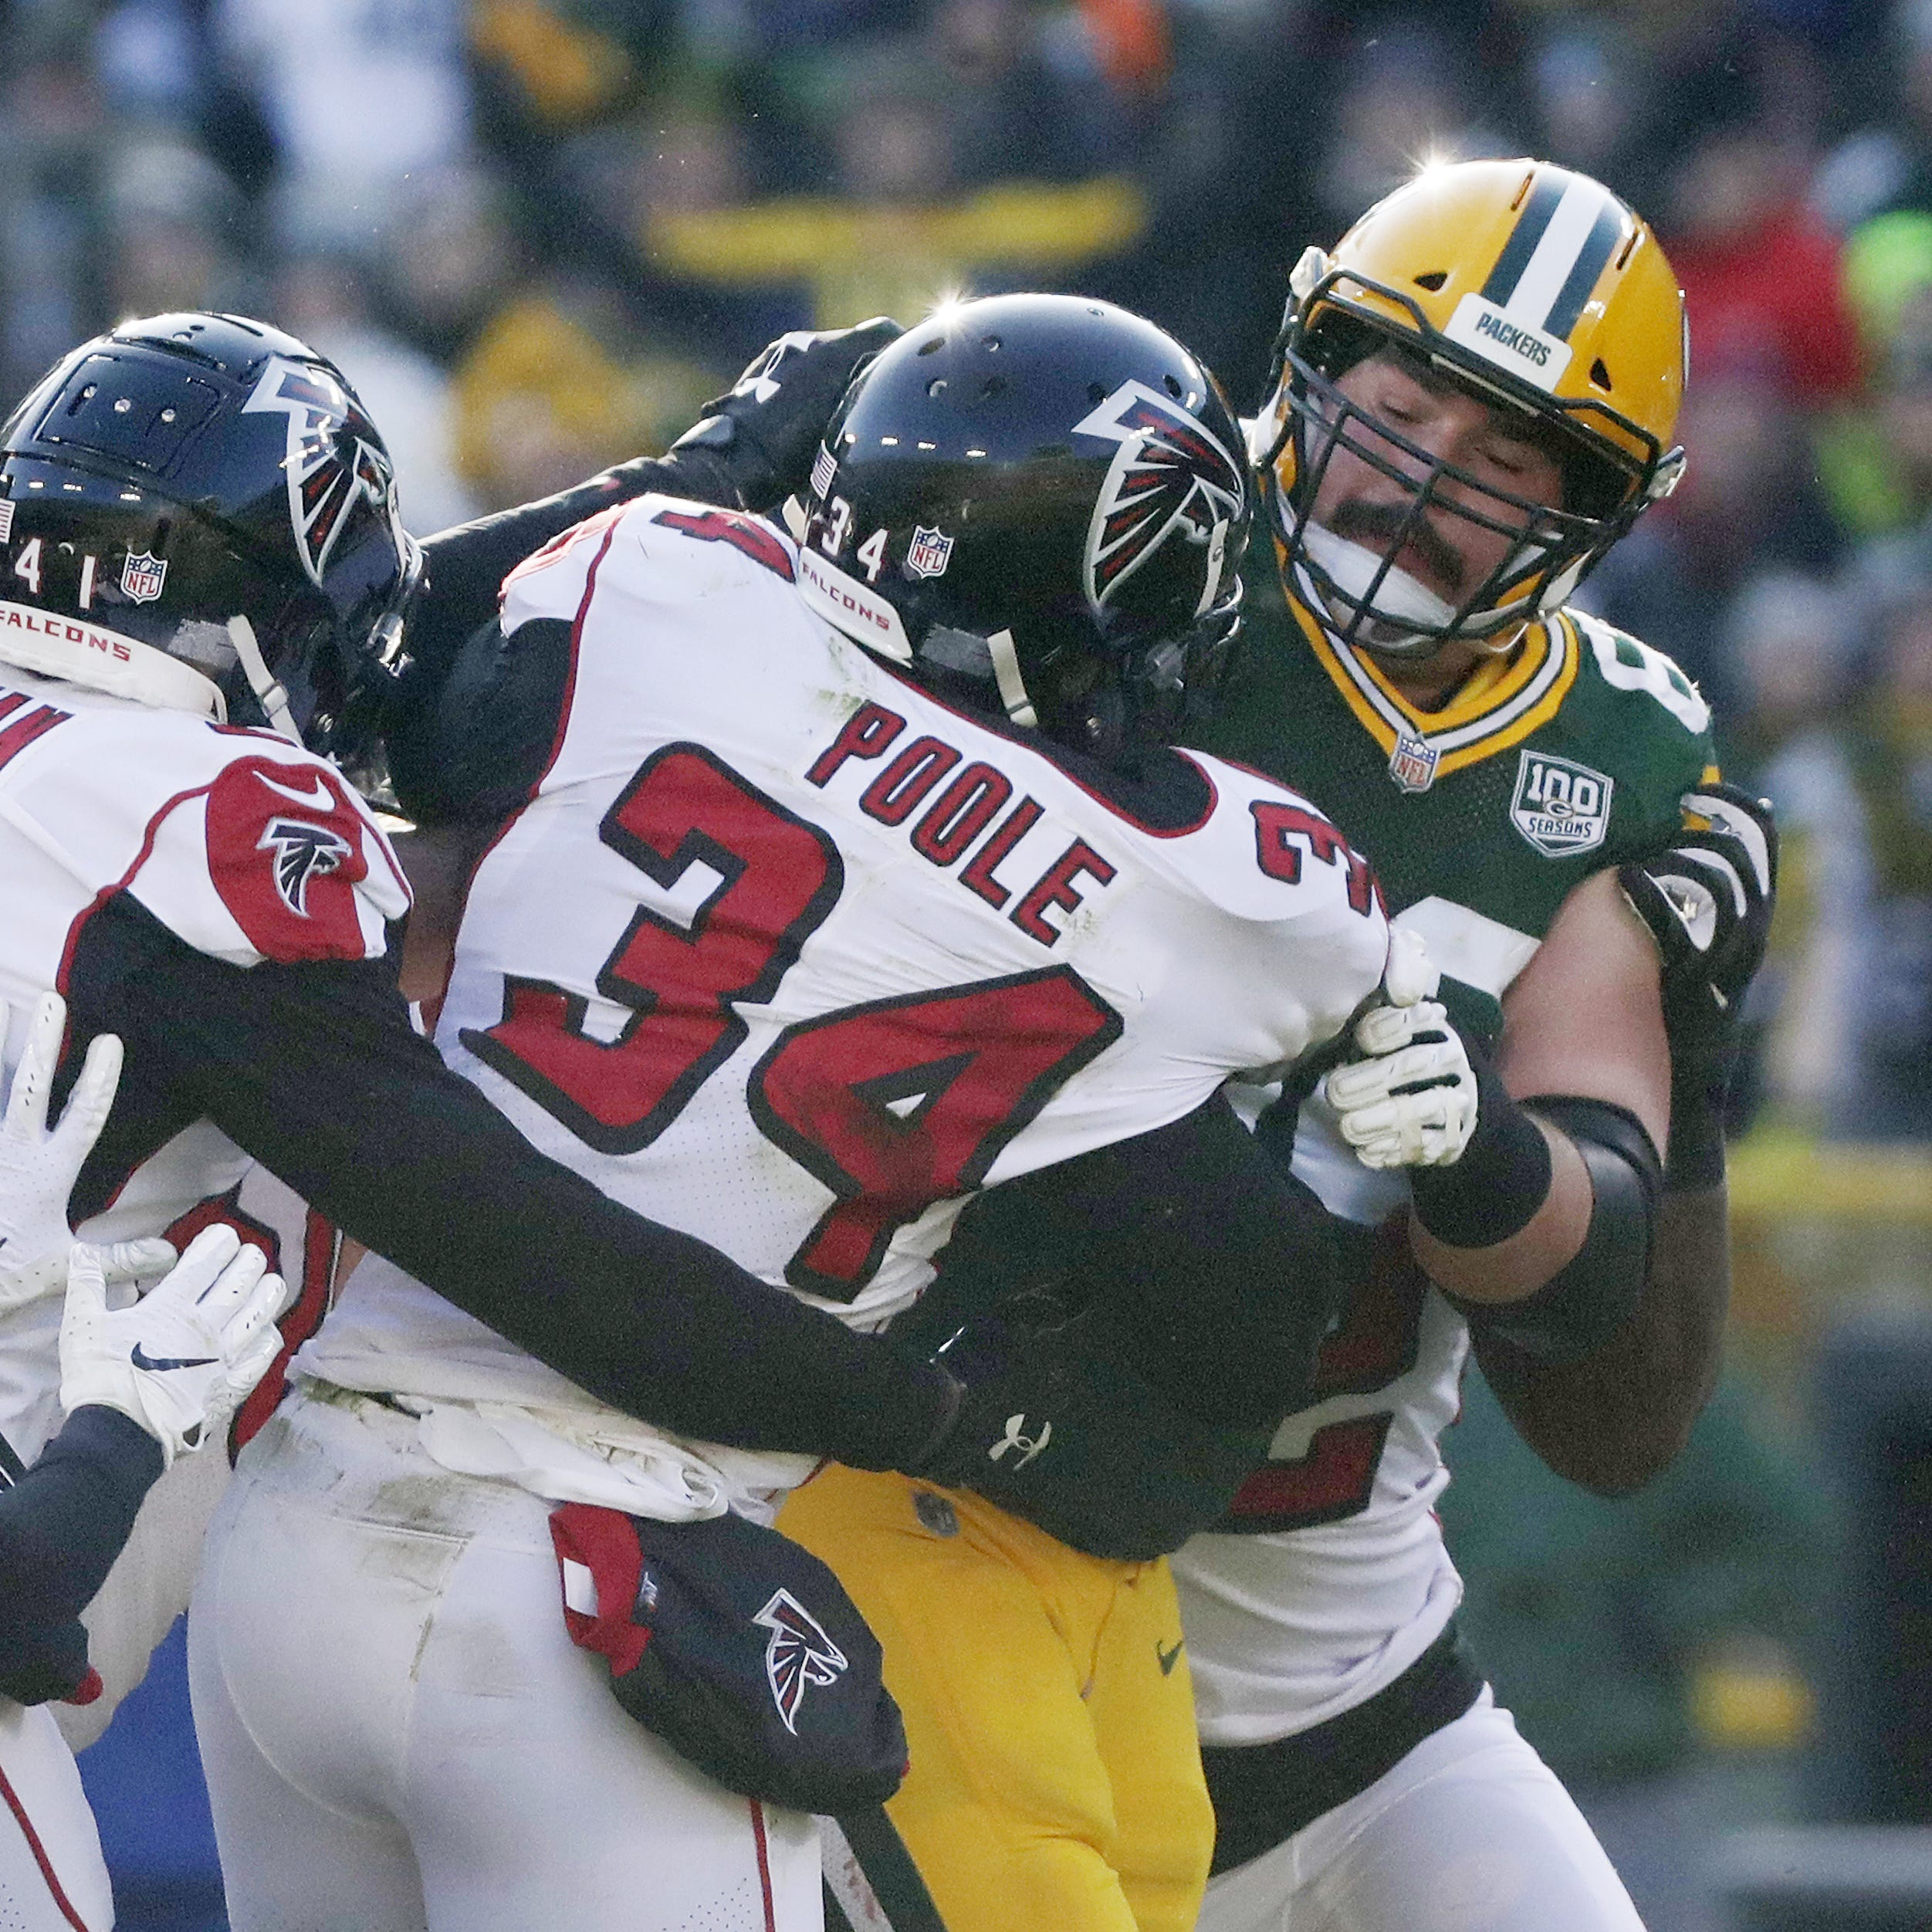 Packers' Linsley fined for role in Falcons melee; no fine for hit on Aaron Rodgers